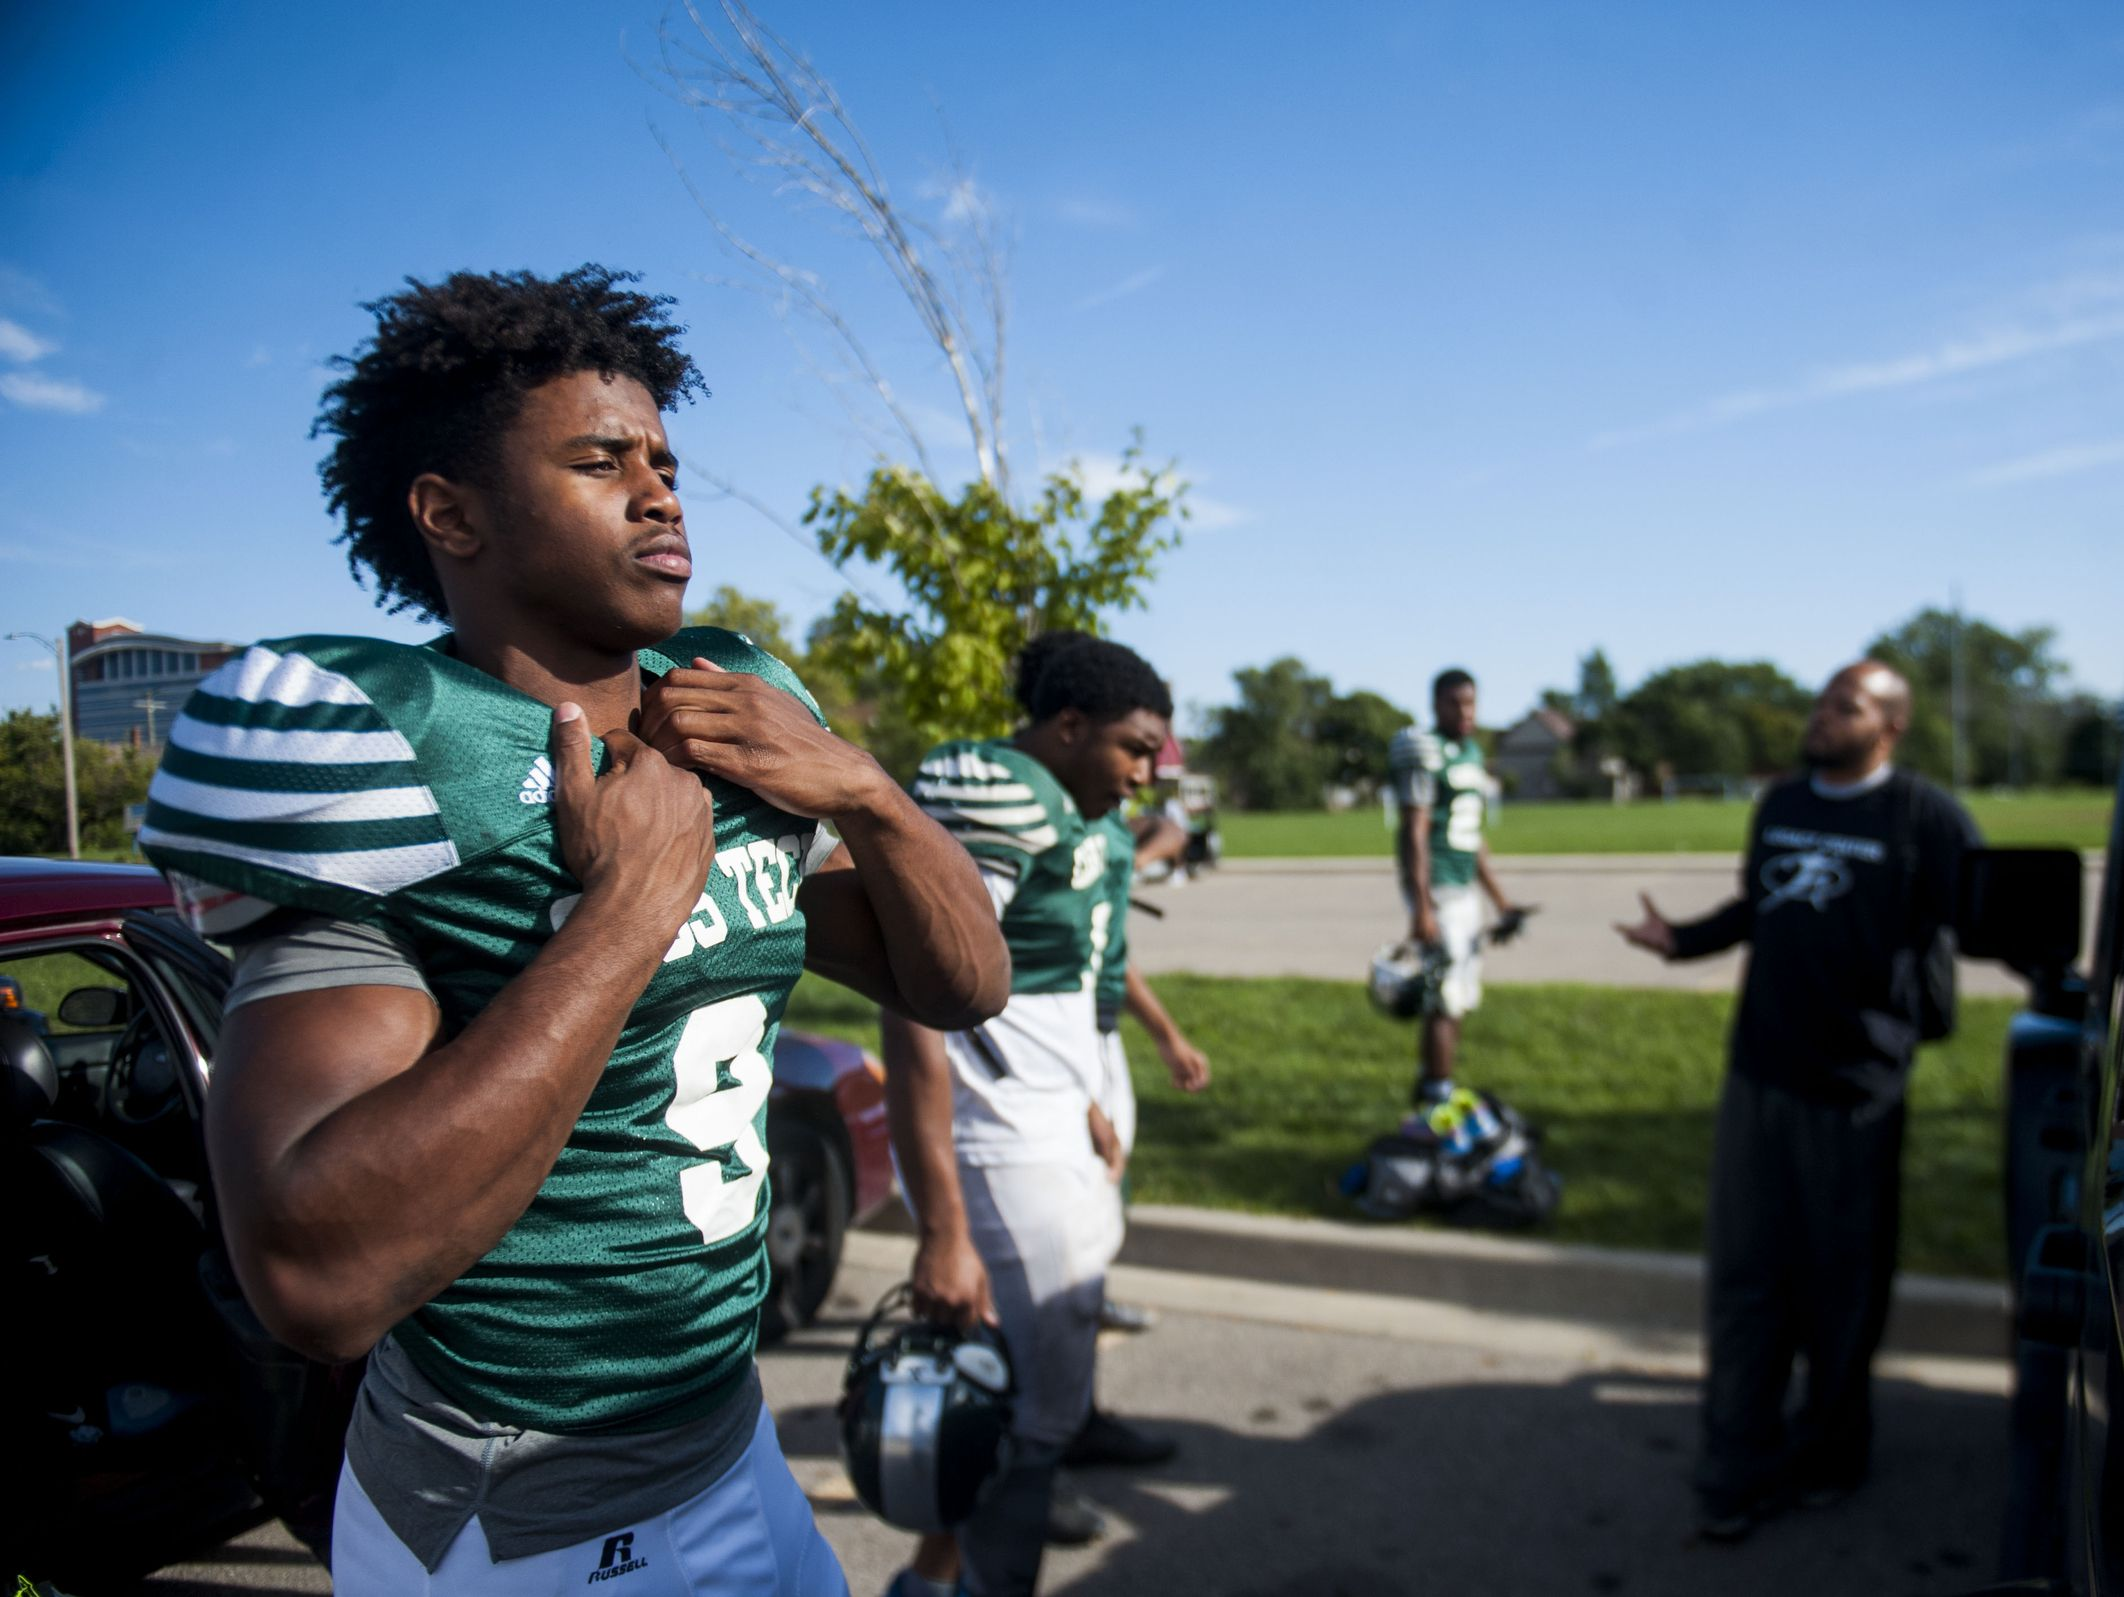 Cass Tech football player, Donovan Peoples-Jones checks his reflection in his Jeep window before the start of practice on Sept. 27, 2016.